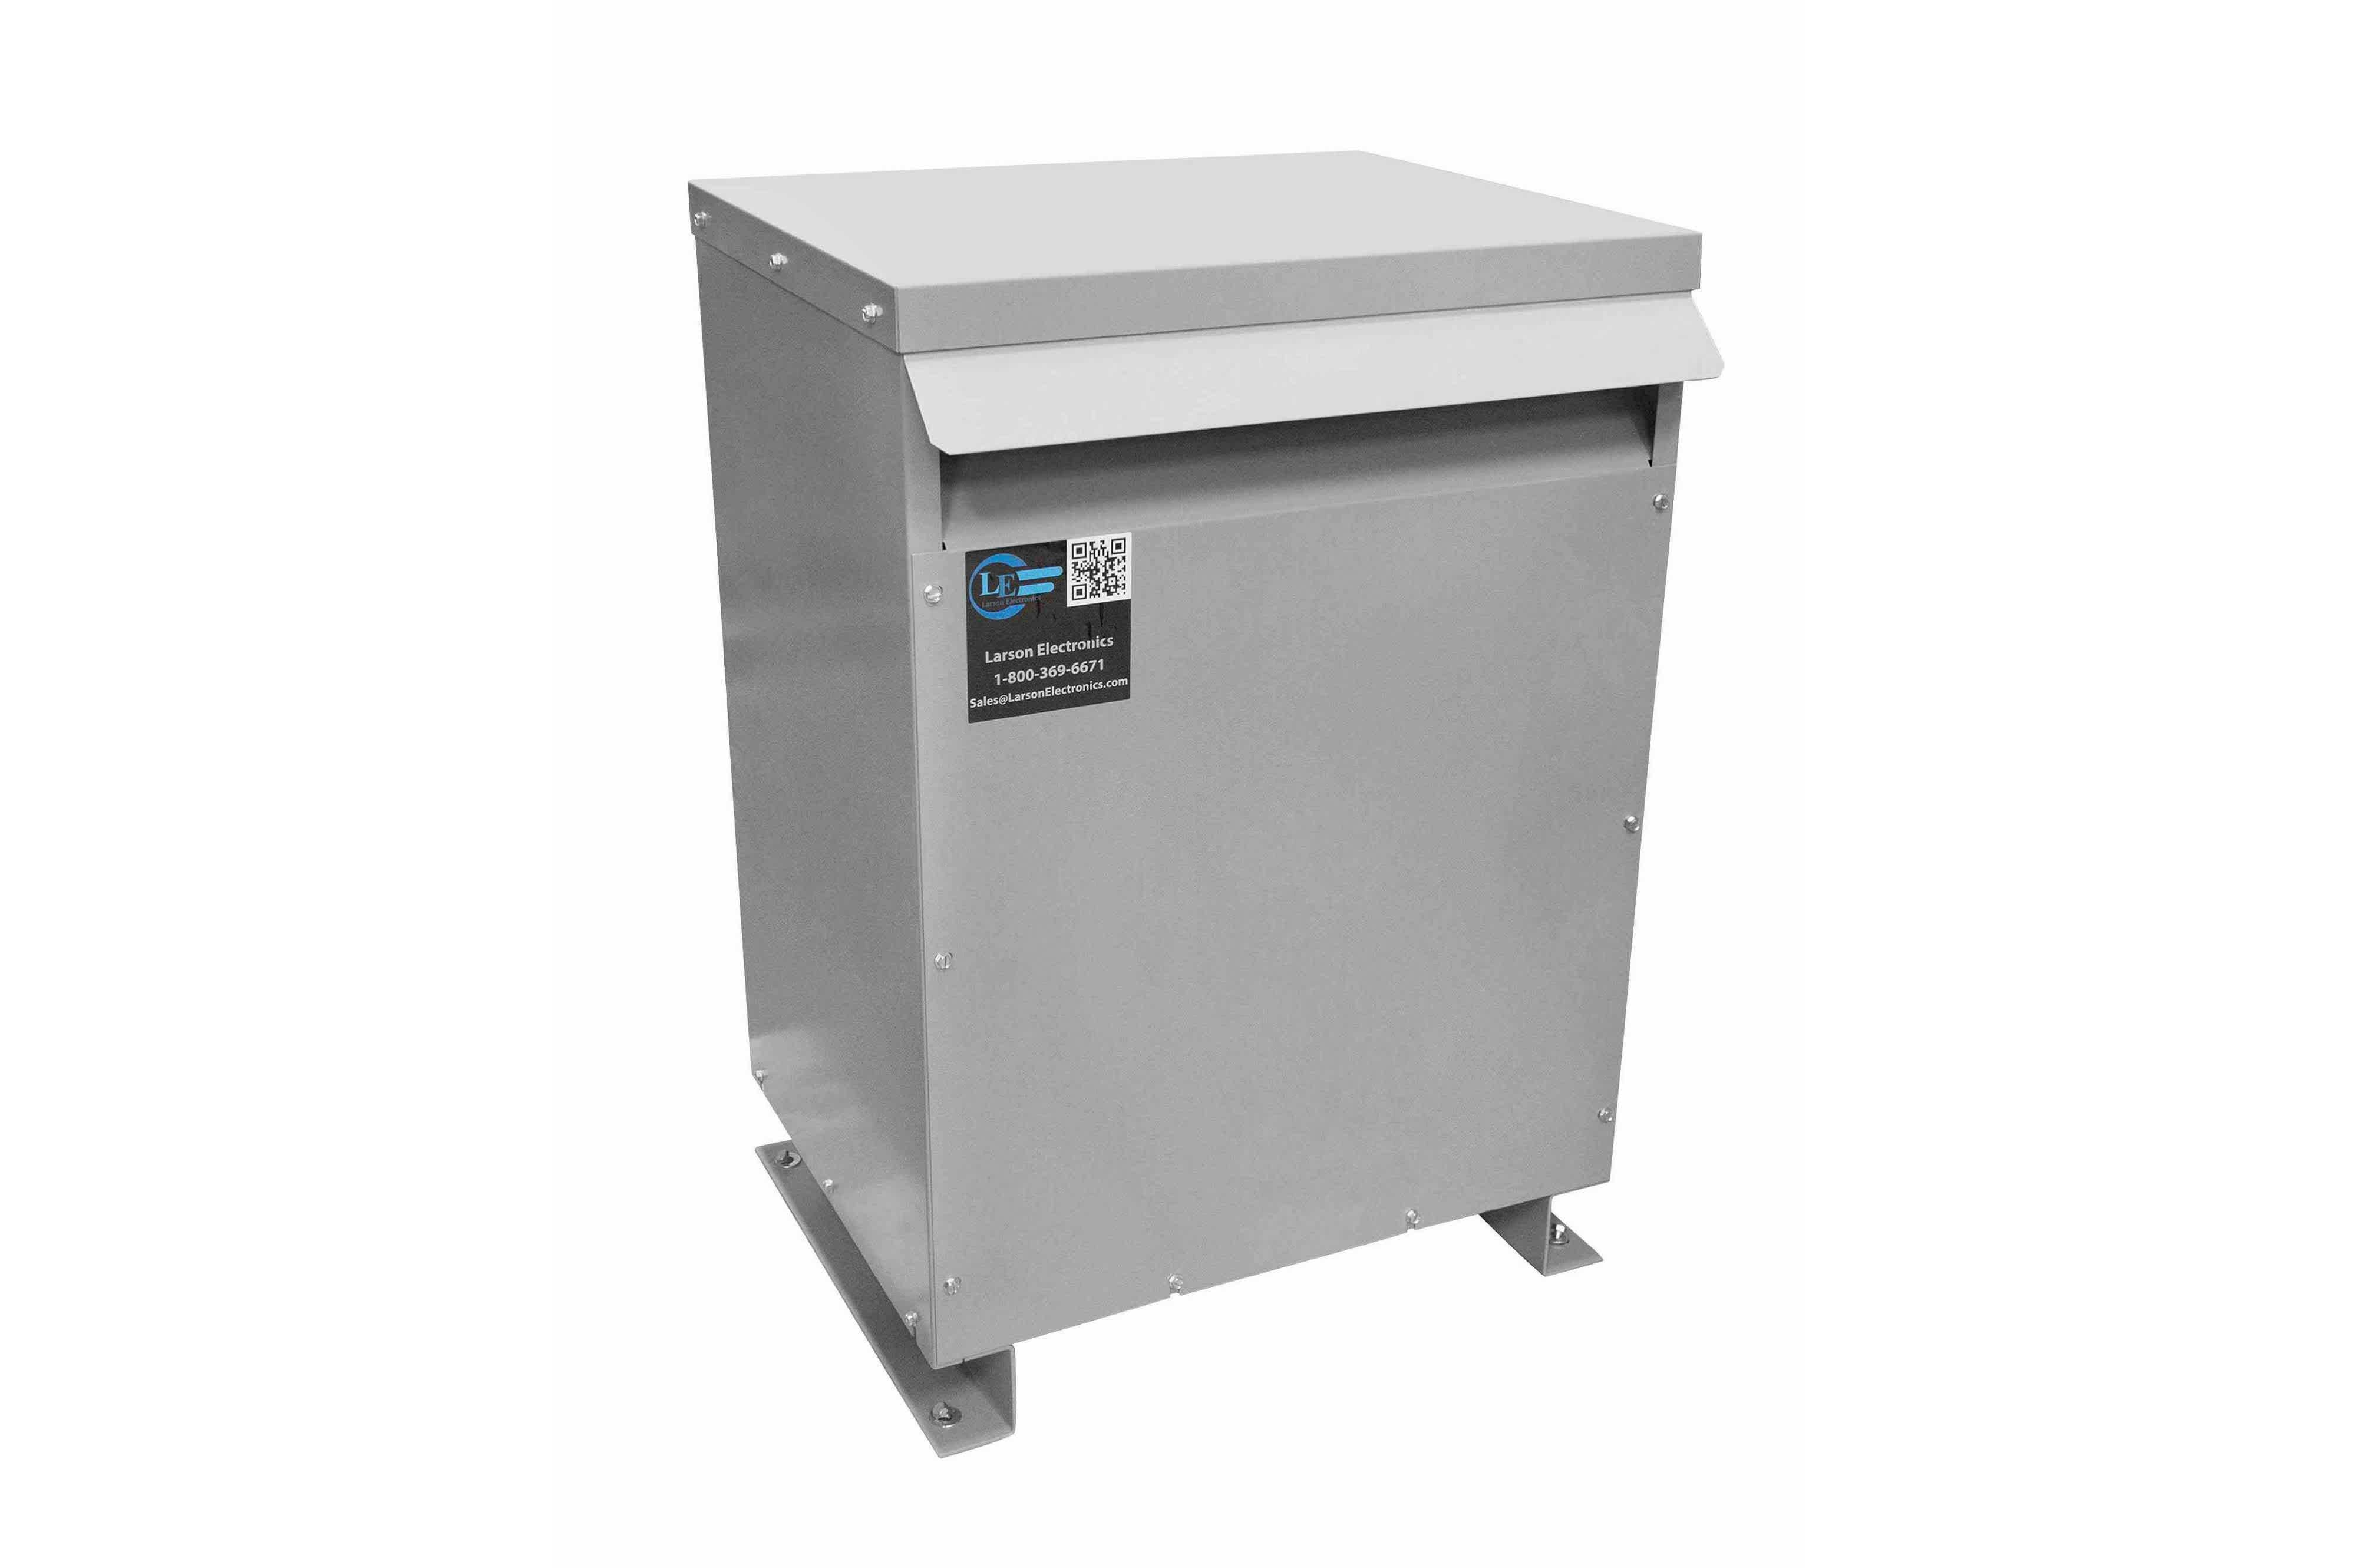 42.5 kVA 3PH Isolation Transformer, 400V Delta Primary, 480V Delta Secondary, N3R, Ventilated, 60 Hz